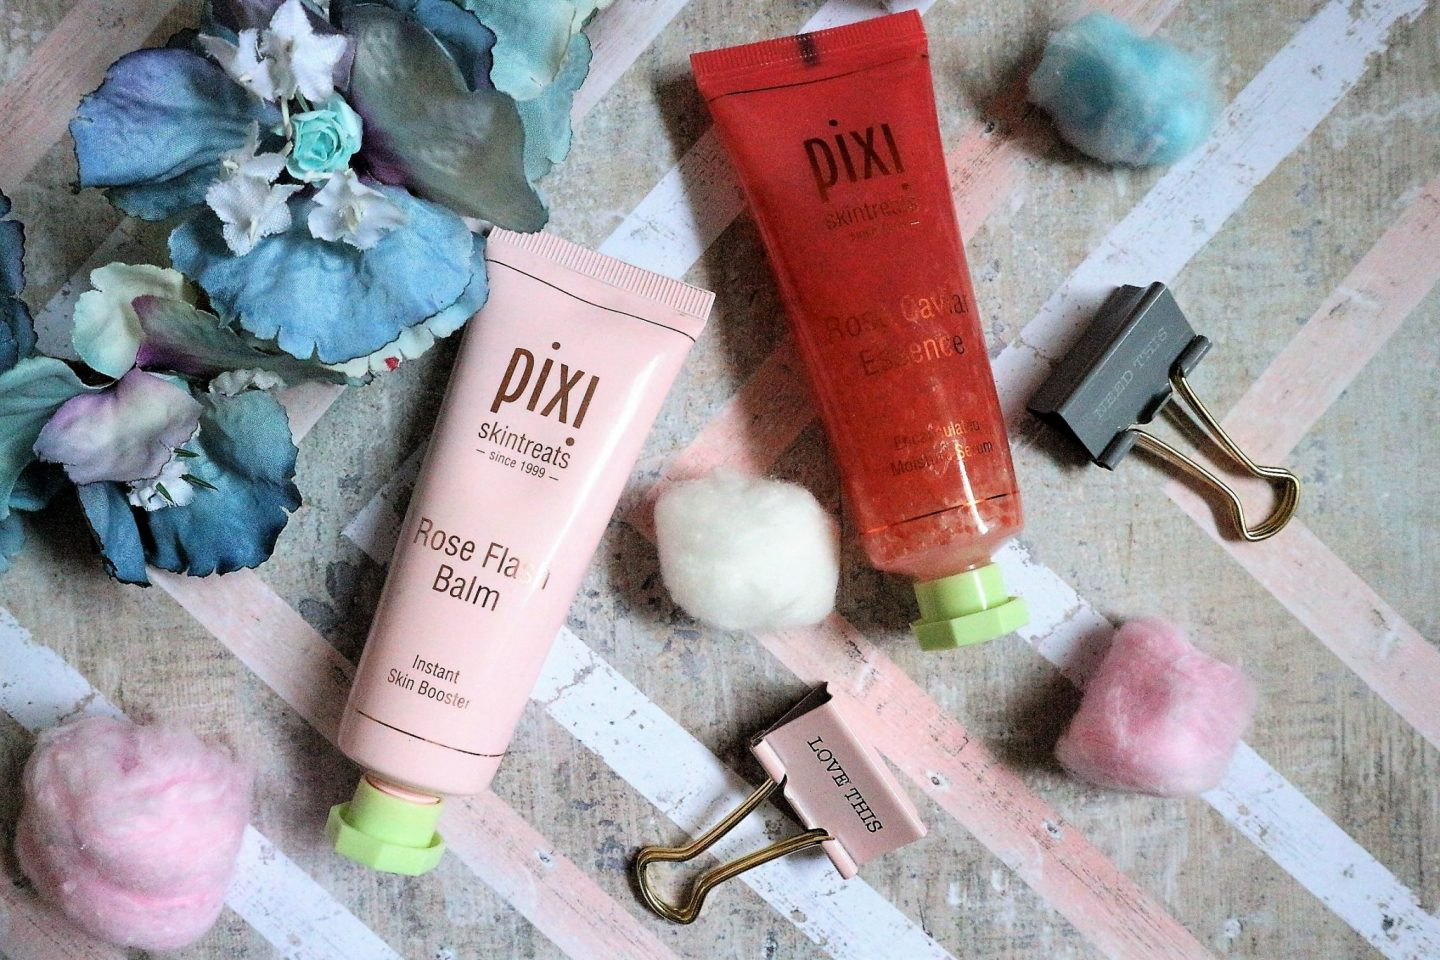 Pixxi Beauty. Pixi Skintreats. Beauty Blog. Pixi Review.